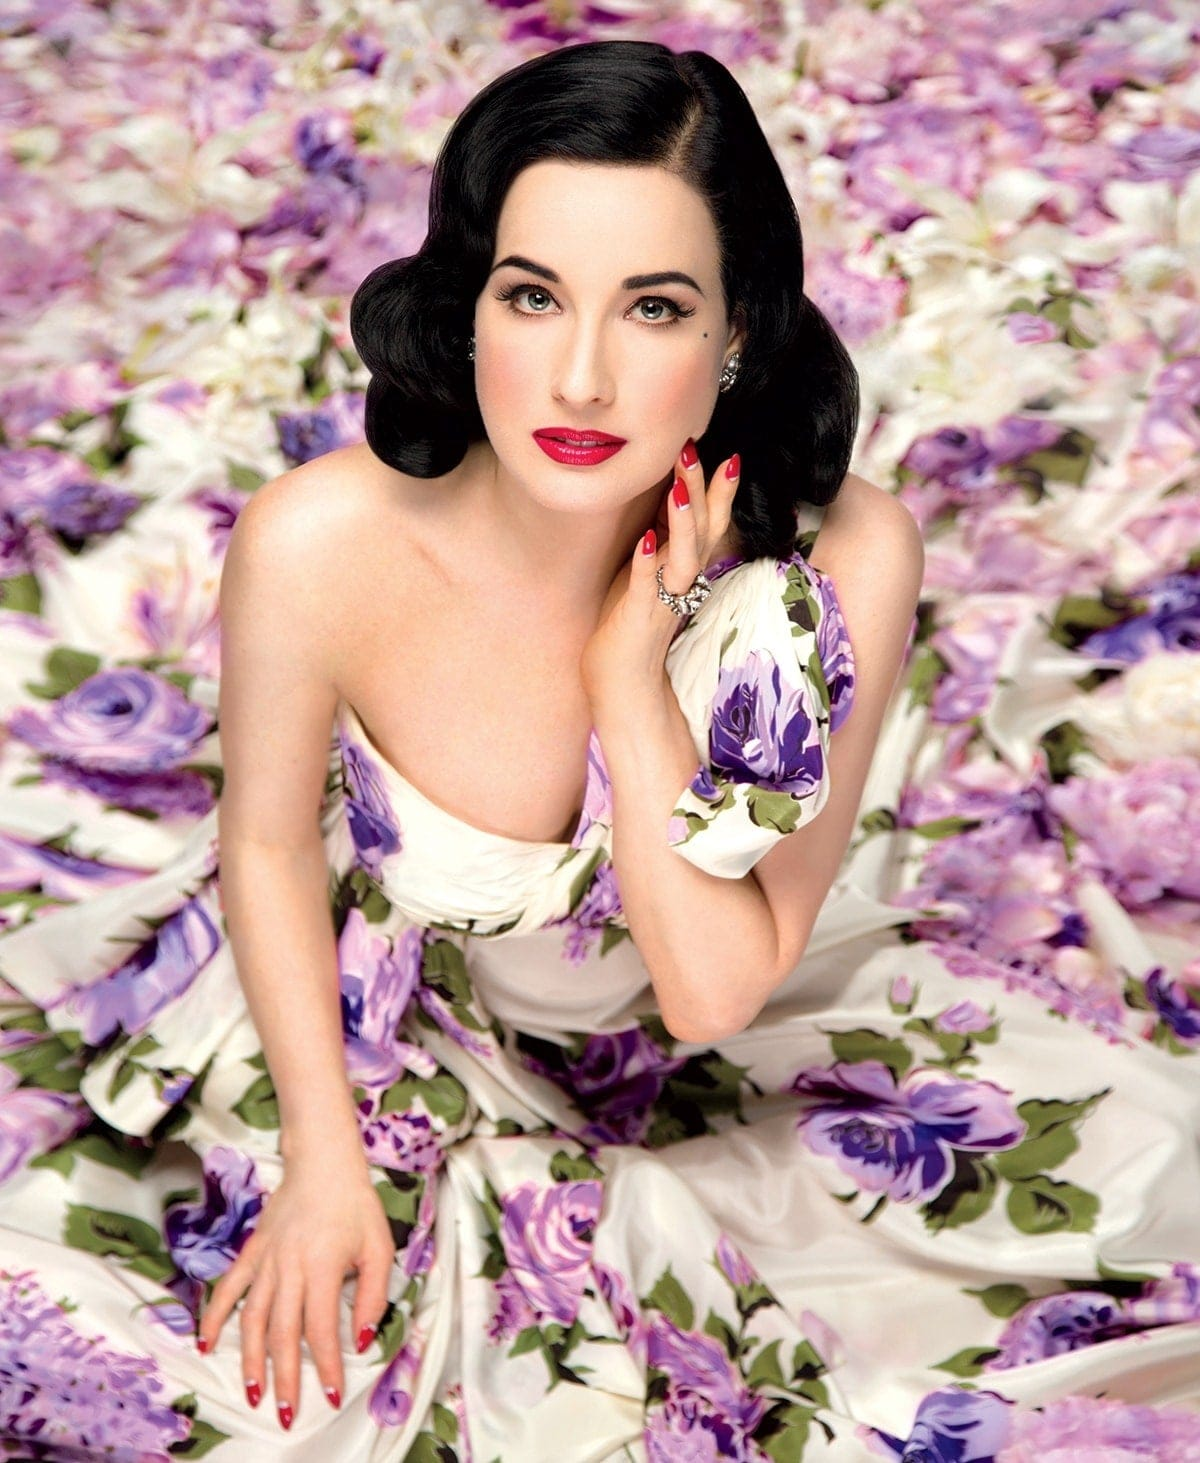 Dita Von Teese on Her New Beauty Book and Why She Wants to Look Like ... Dita Von Teese